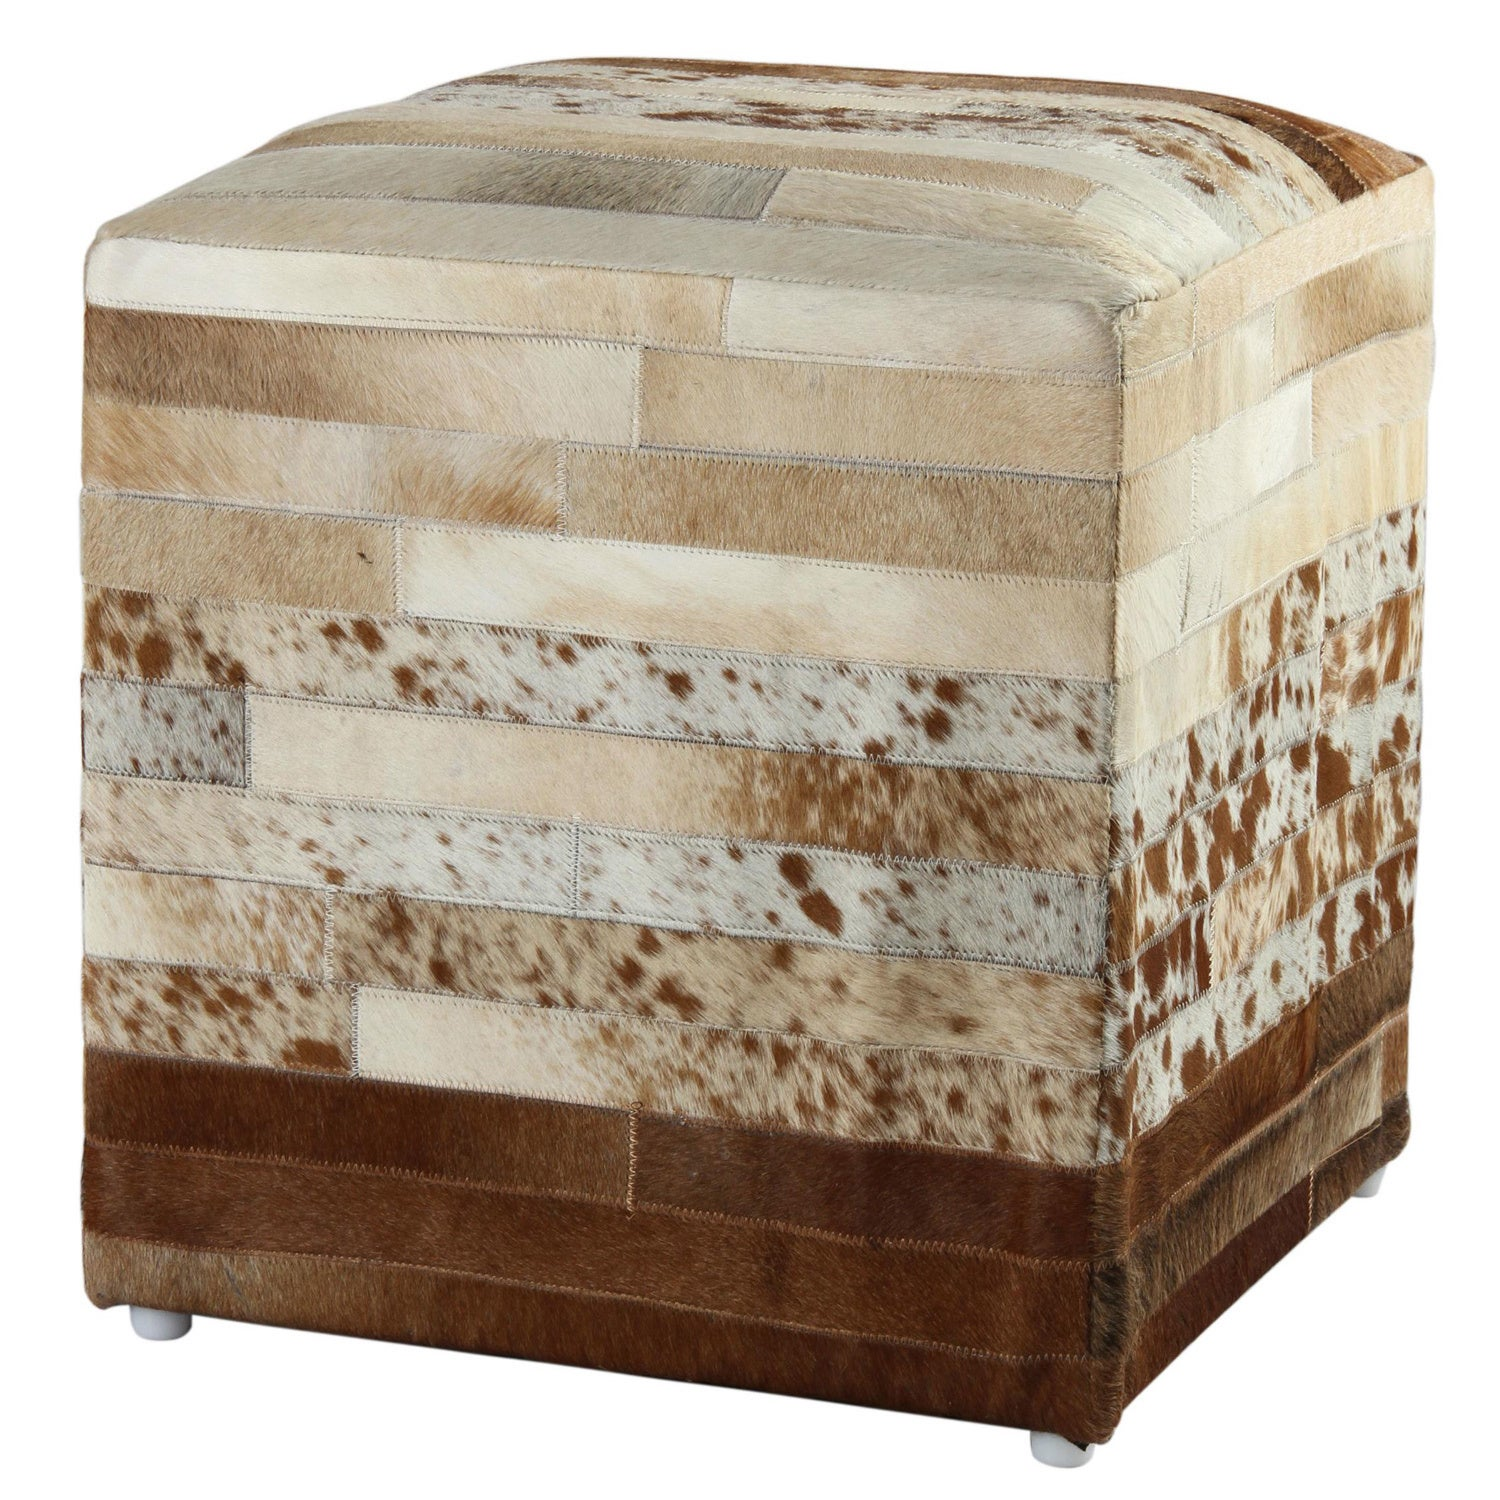 St. Croix 21-inch Brown Leather Striped Hide Pouf Ottoman...